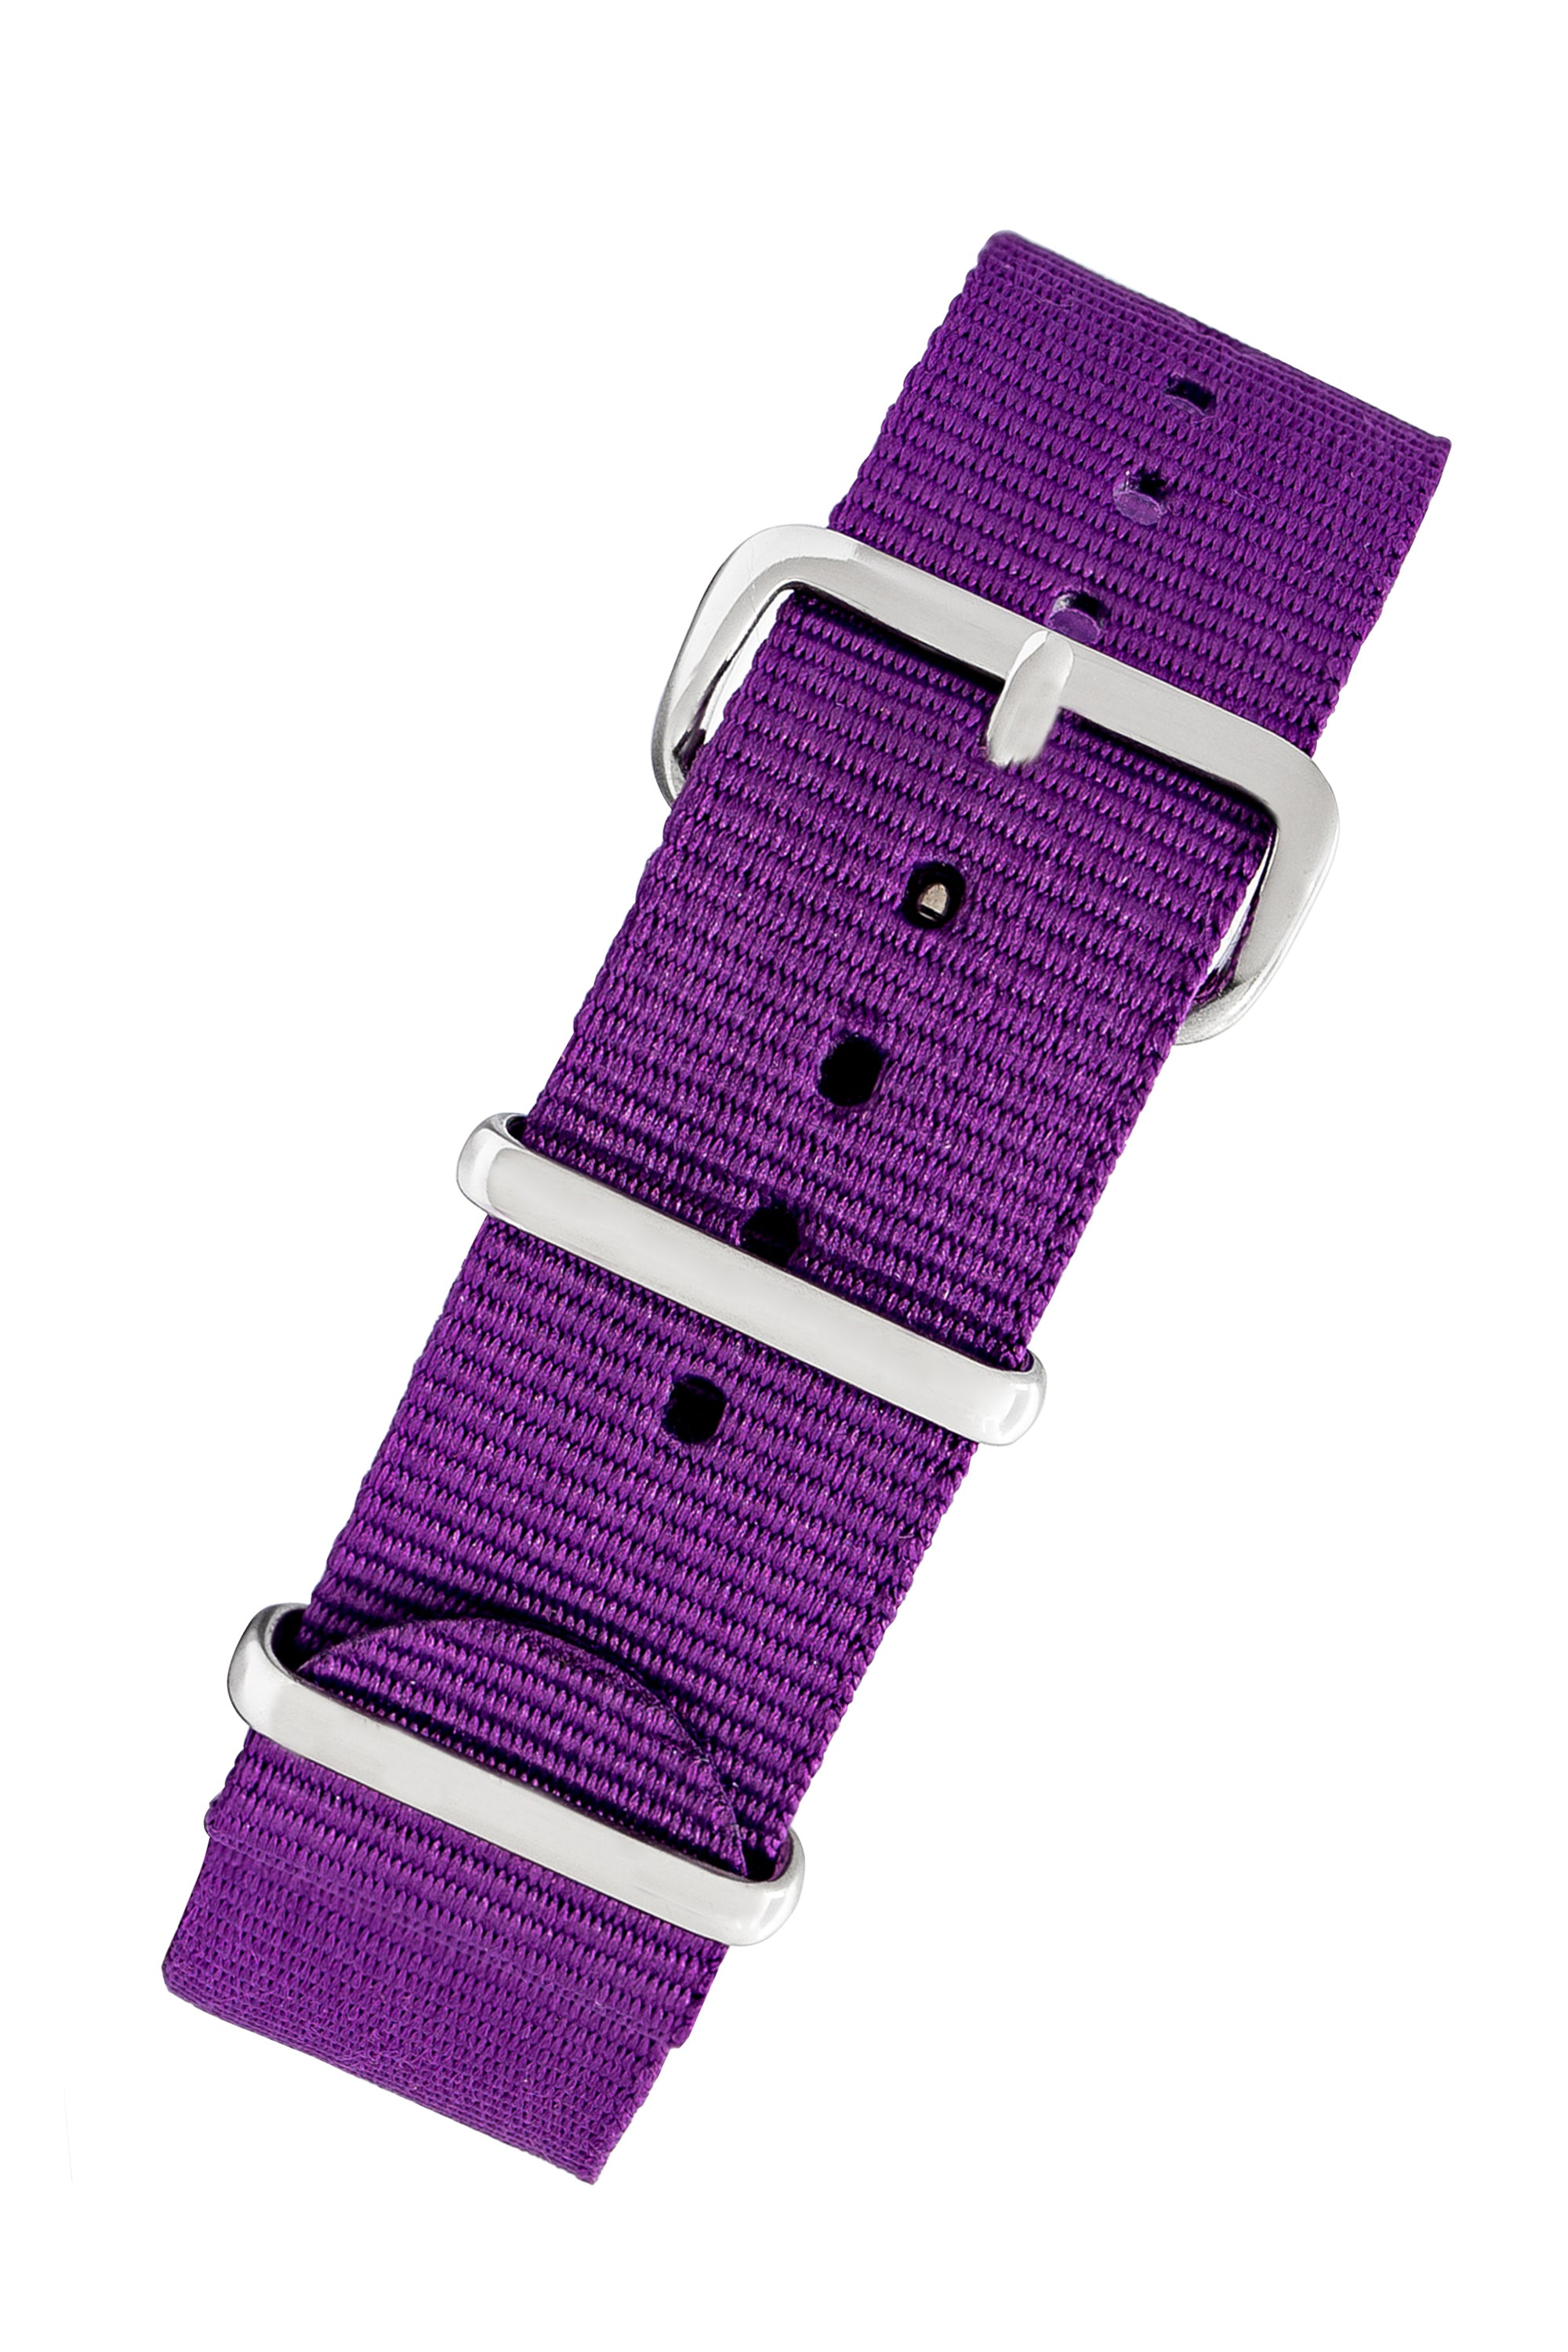 NATO Watch Strap in PURPLE with Polished Buckle and Keepers